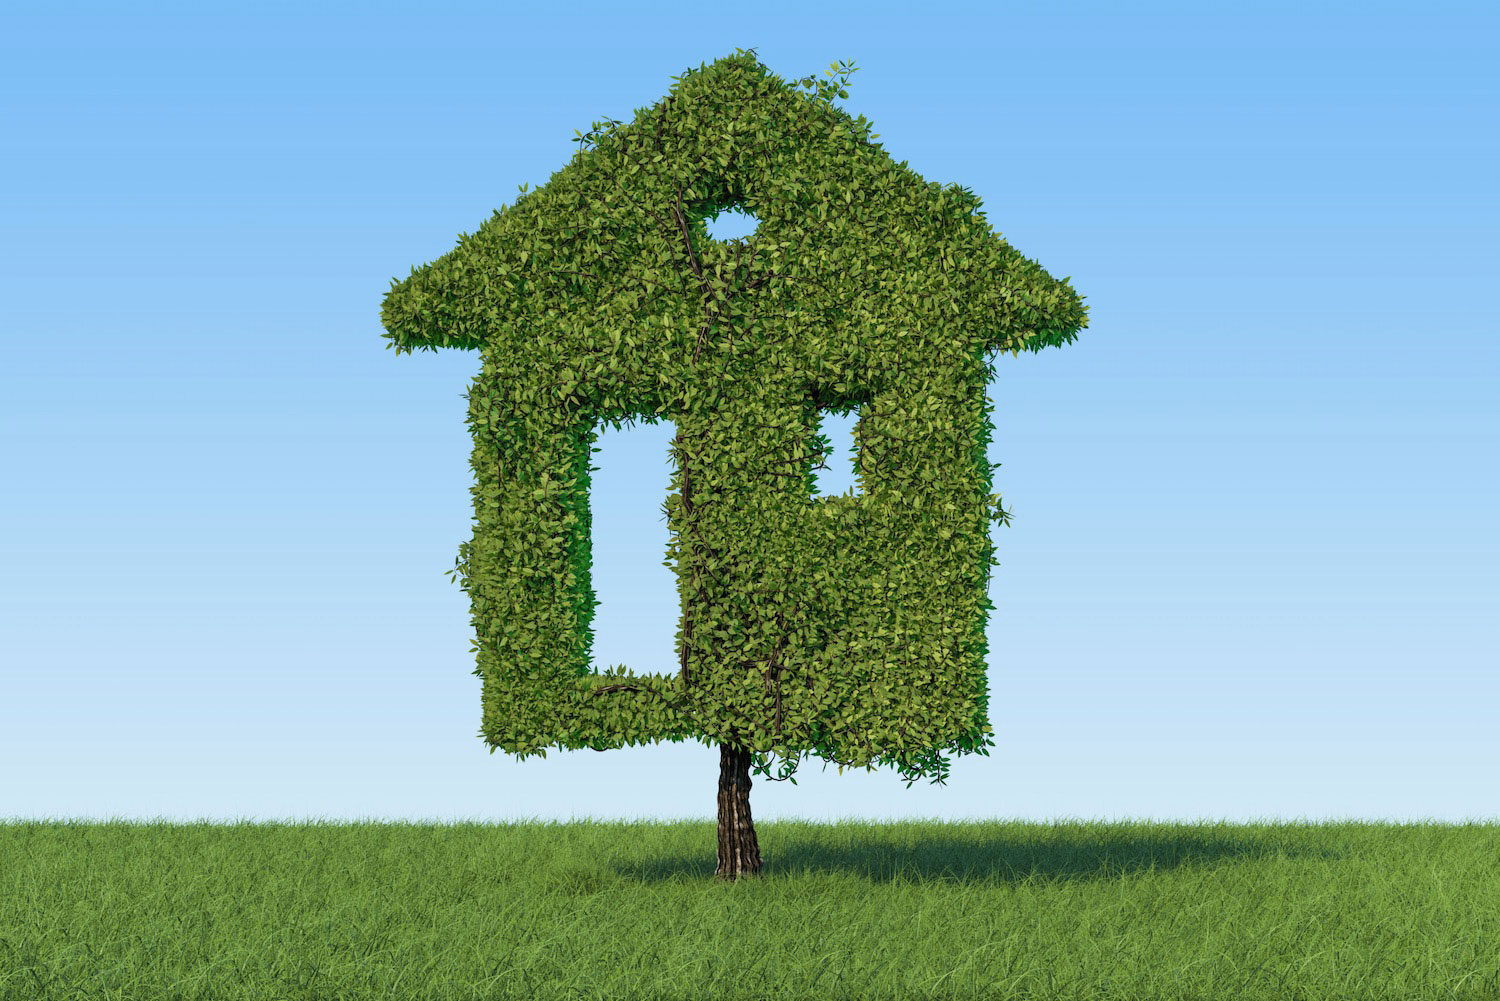 Property Tenure is important for foreign investors to understand